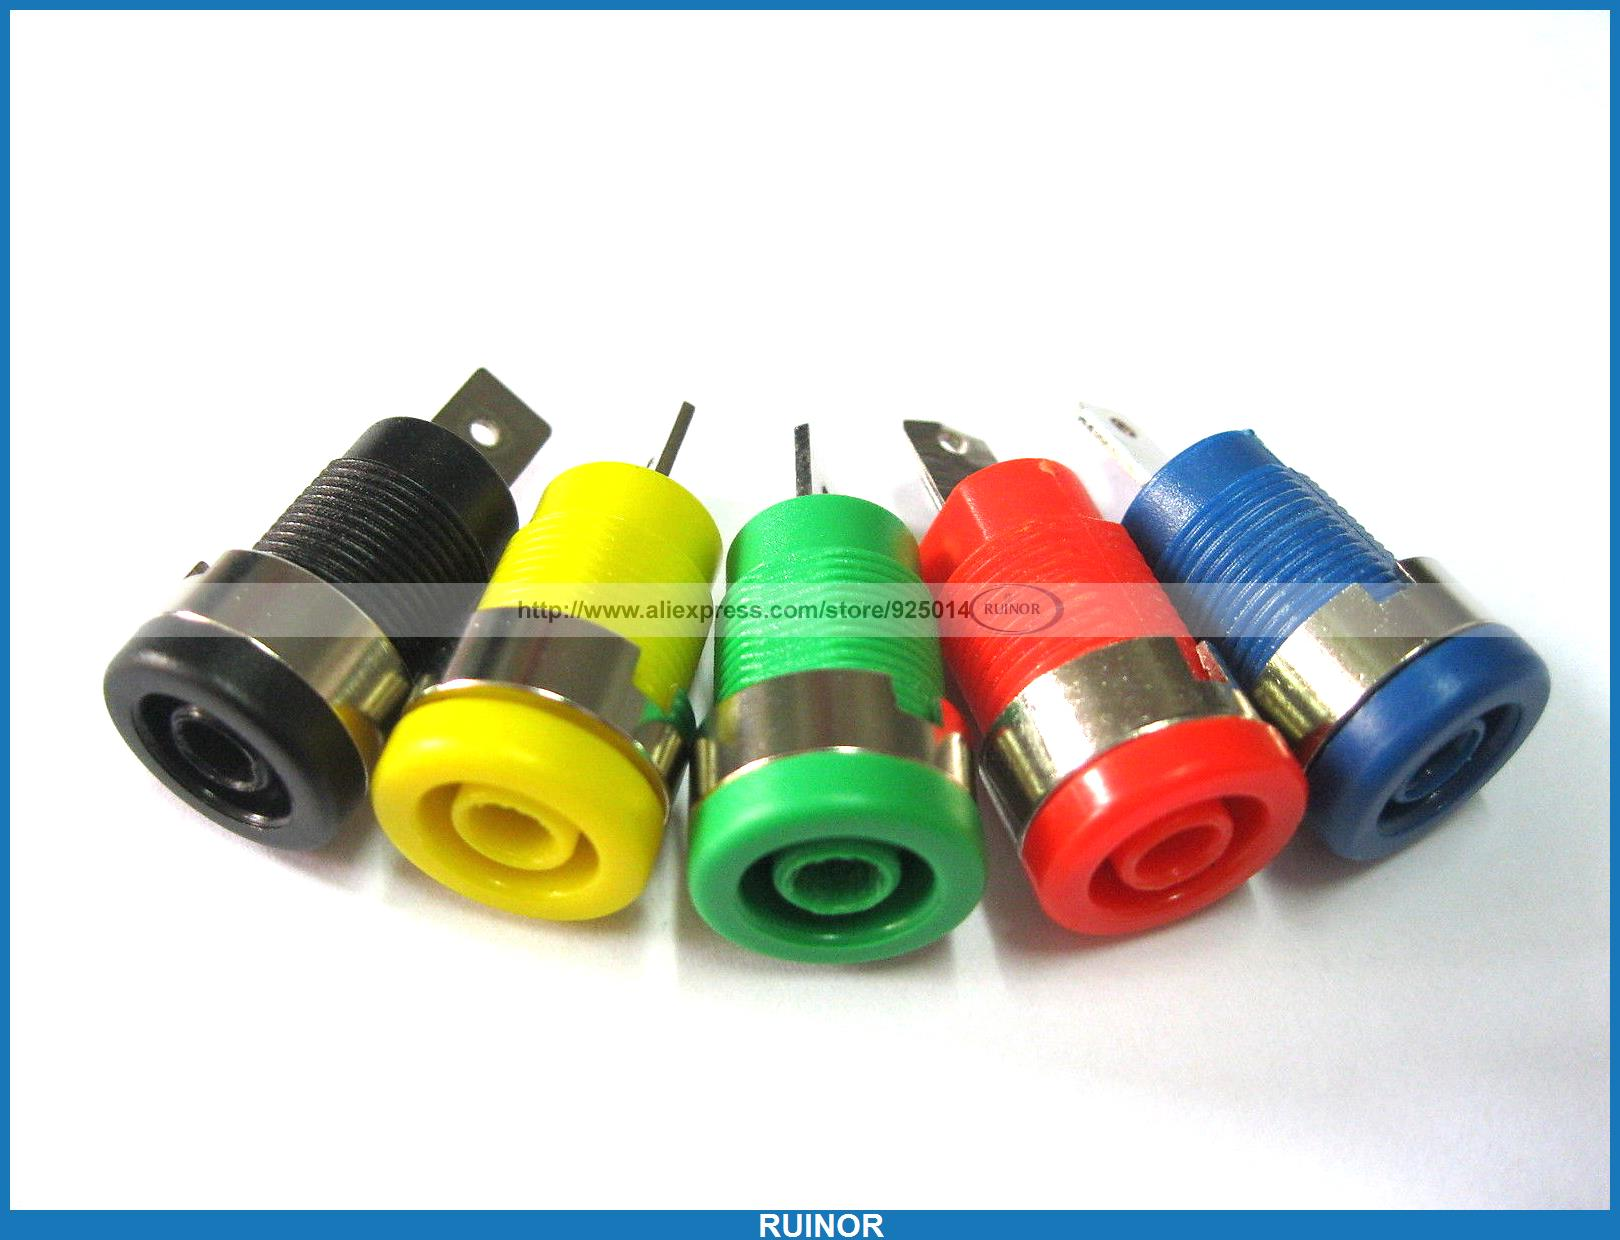 40 Pcs Binding Post Banana Jack for 4mm Safety Protection Plug 5 Colors SL2075 <br>